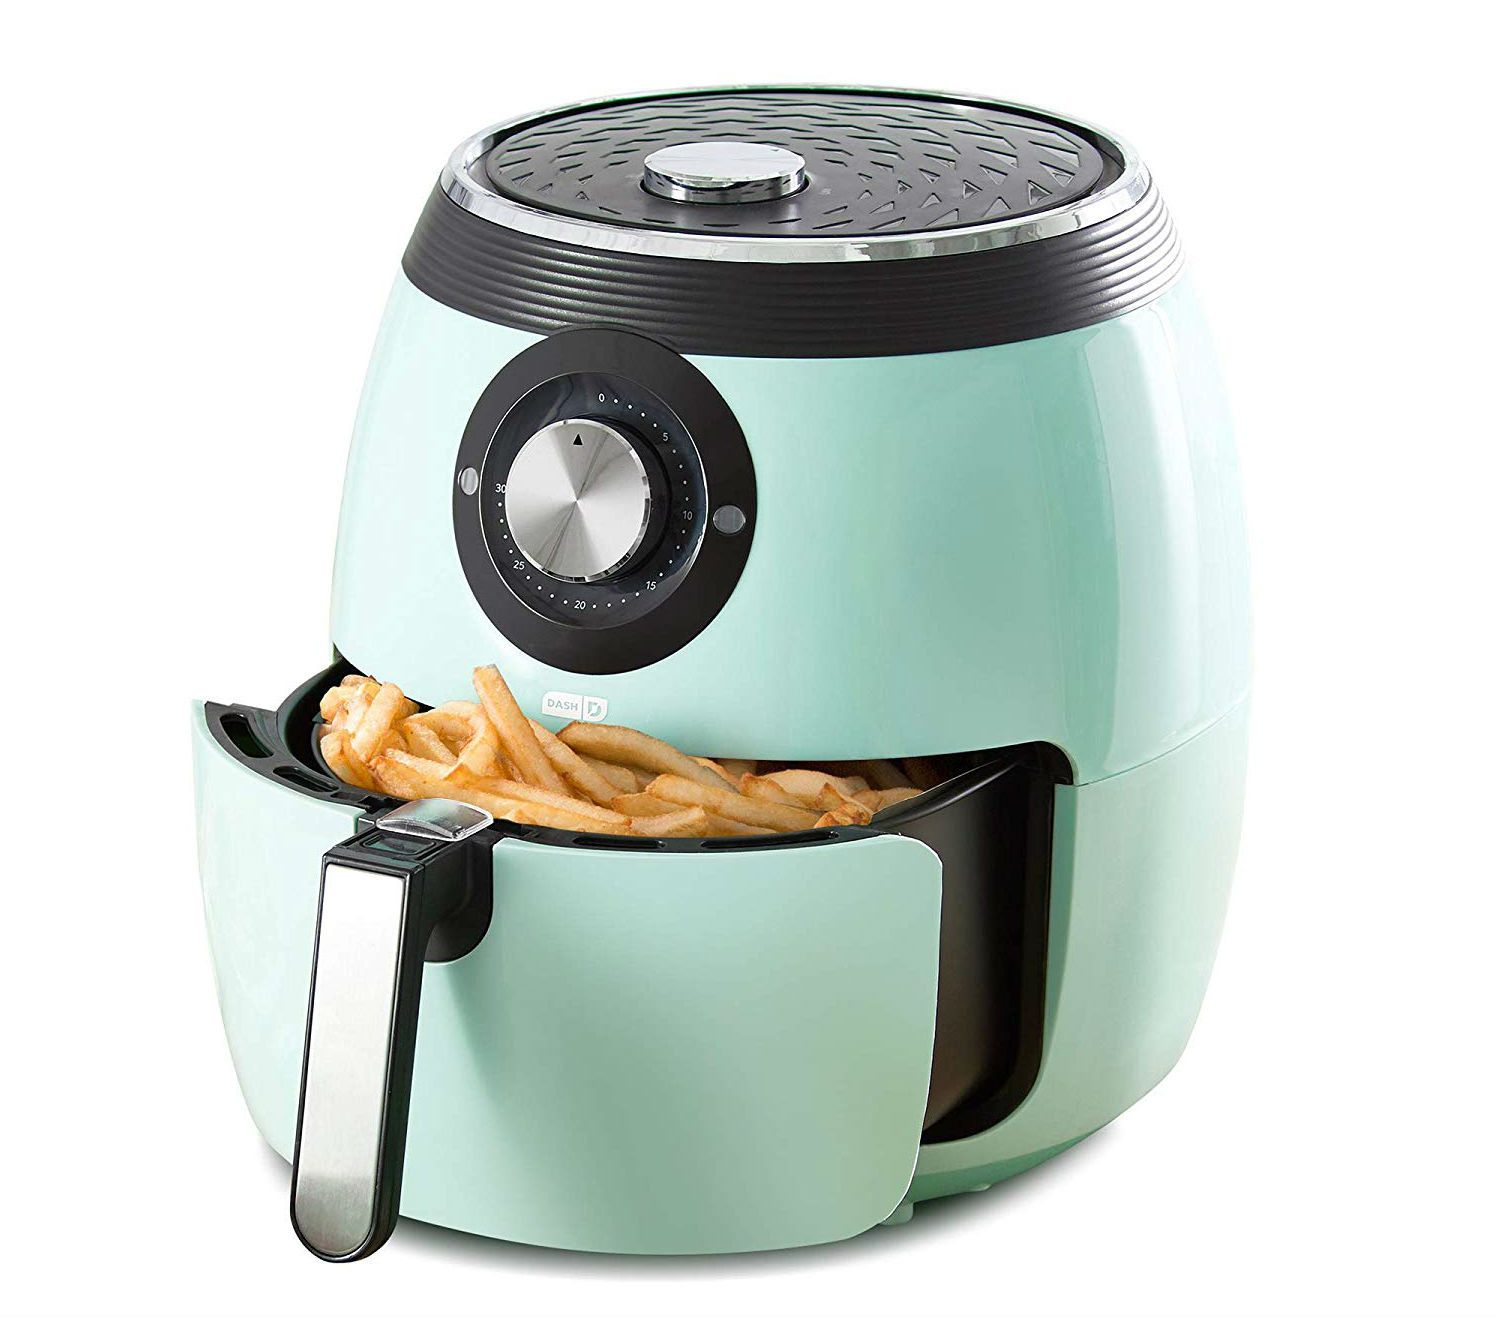 Deluxe Electric Air Fryer + Oven Cooker, 6-Quart